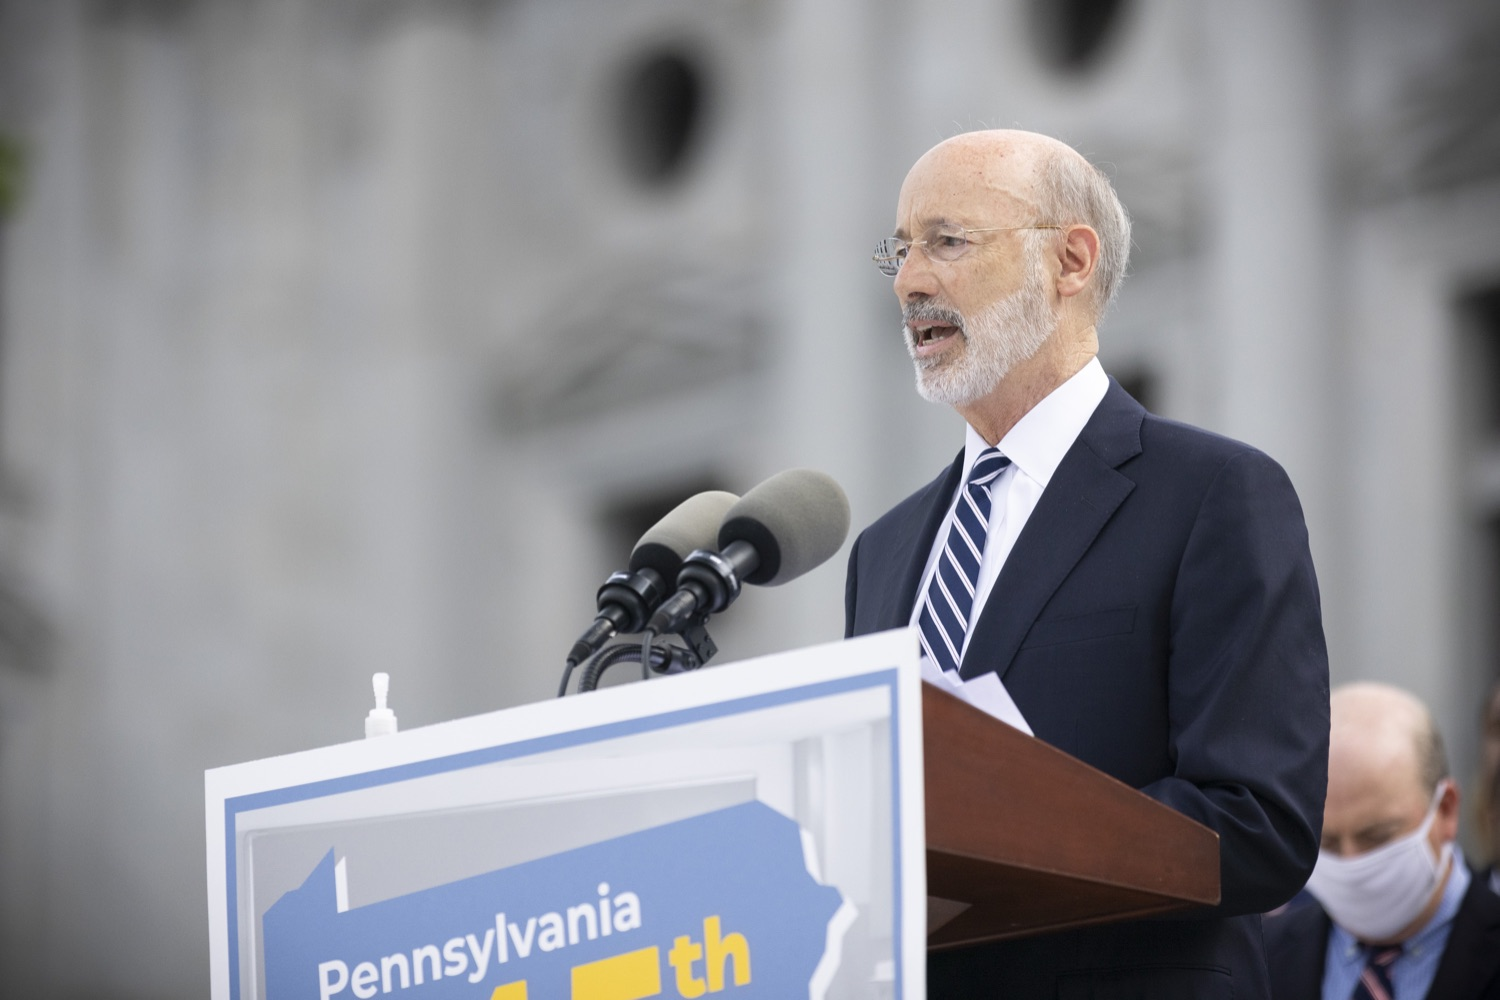 """<a href=""""https://filesource.wostreaming.net/commonwealthofpa/photo/18810_gov_fairFunding_dz_003.jpg"""" target=""""_blank"""">⇣Download Photo<br></a>Pennsylvania Governor Tom Wolf speaking with the press.  Continuing their commitment to students and working families, Governor Tom Wolf and House and Senate Democratic Leaders held a Capitol press conference today to highlight the injustice in the states school funding system and call for fair funding of every district.  Harrisburg, PA   June 8, 2021"""